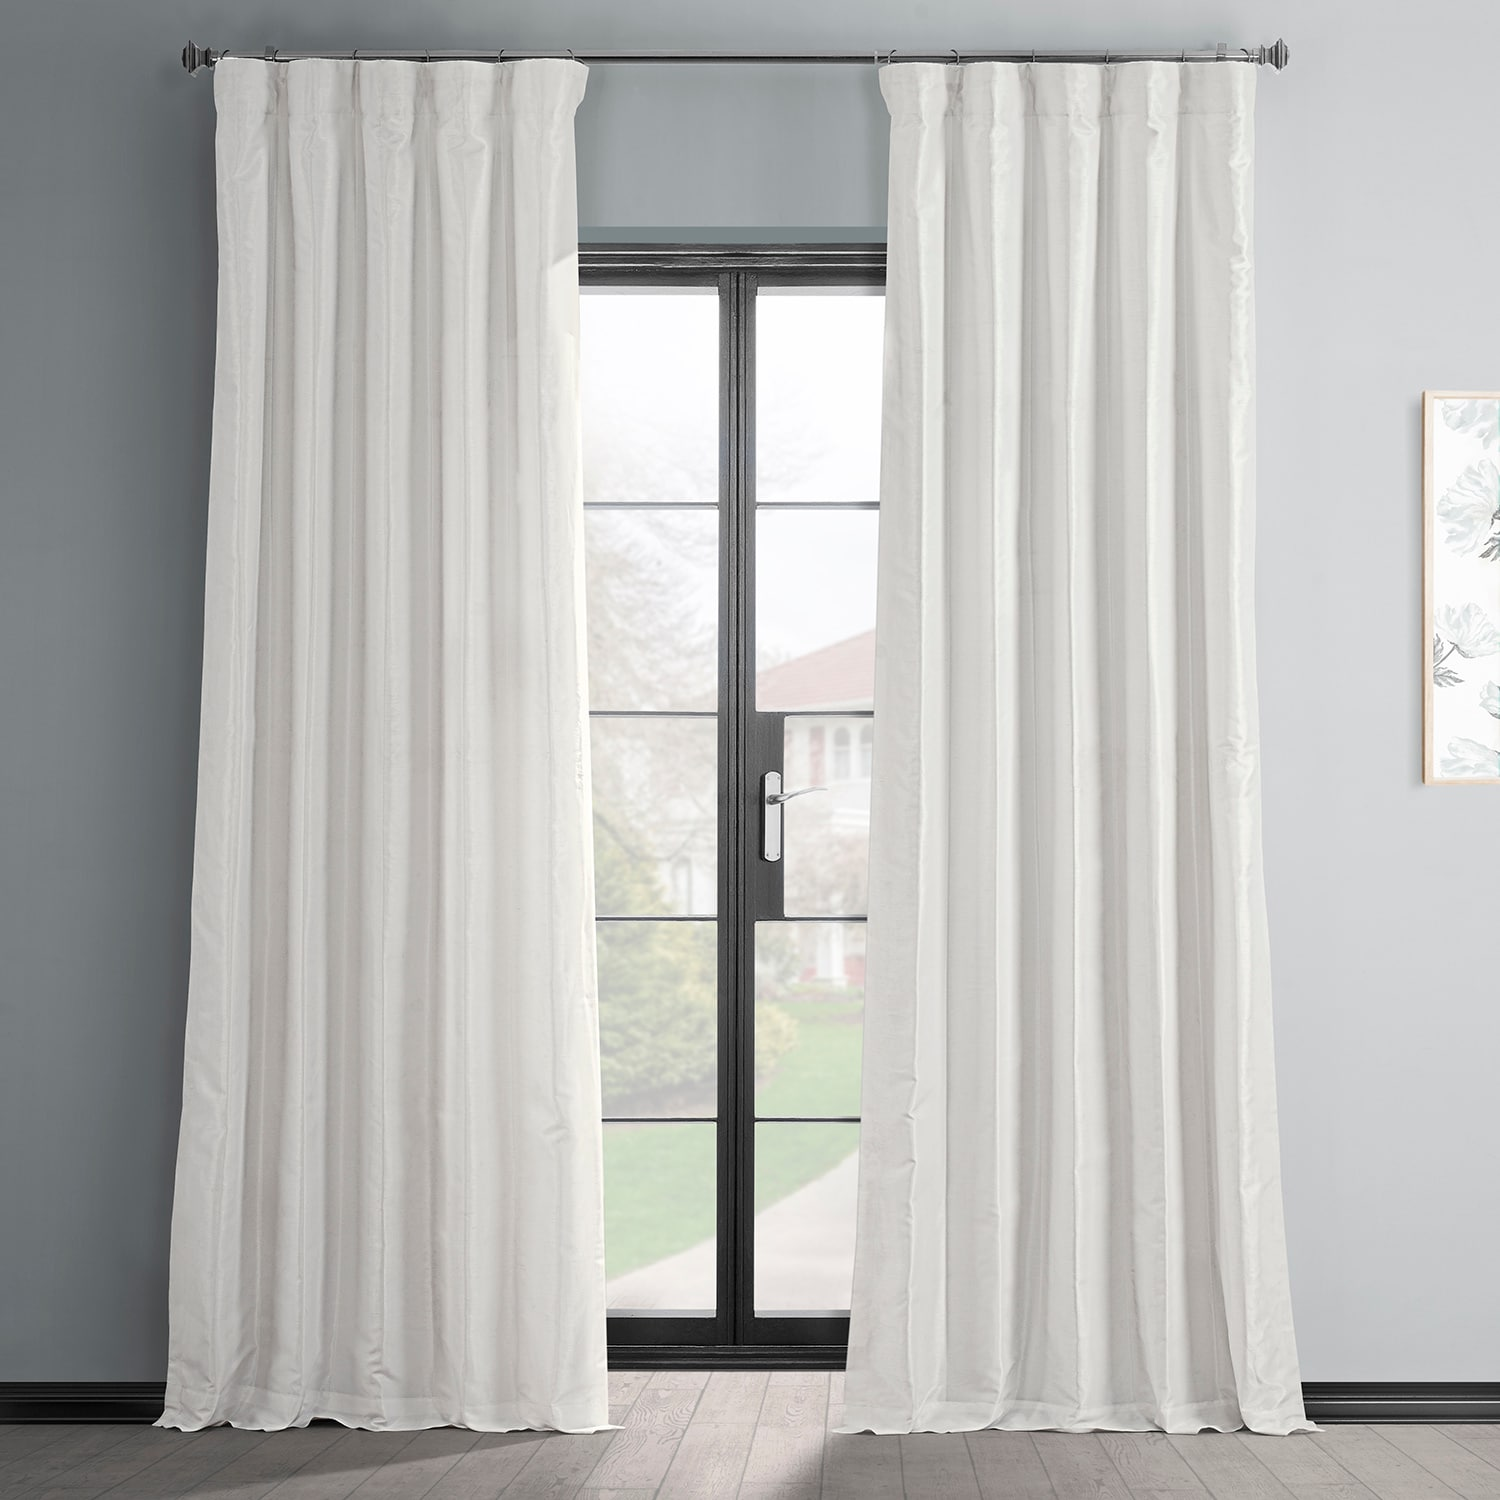 off white textured vintage faux dupioni silk curtains